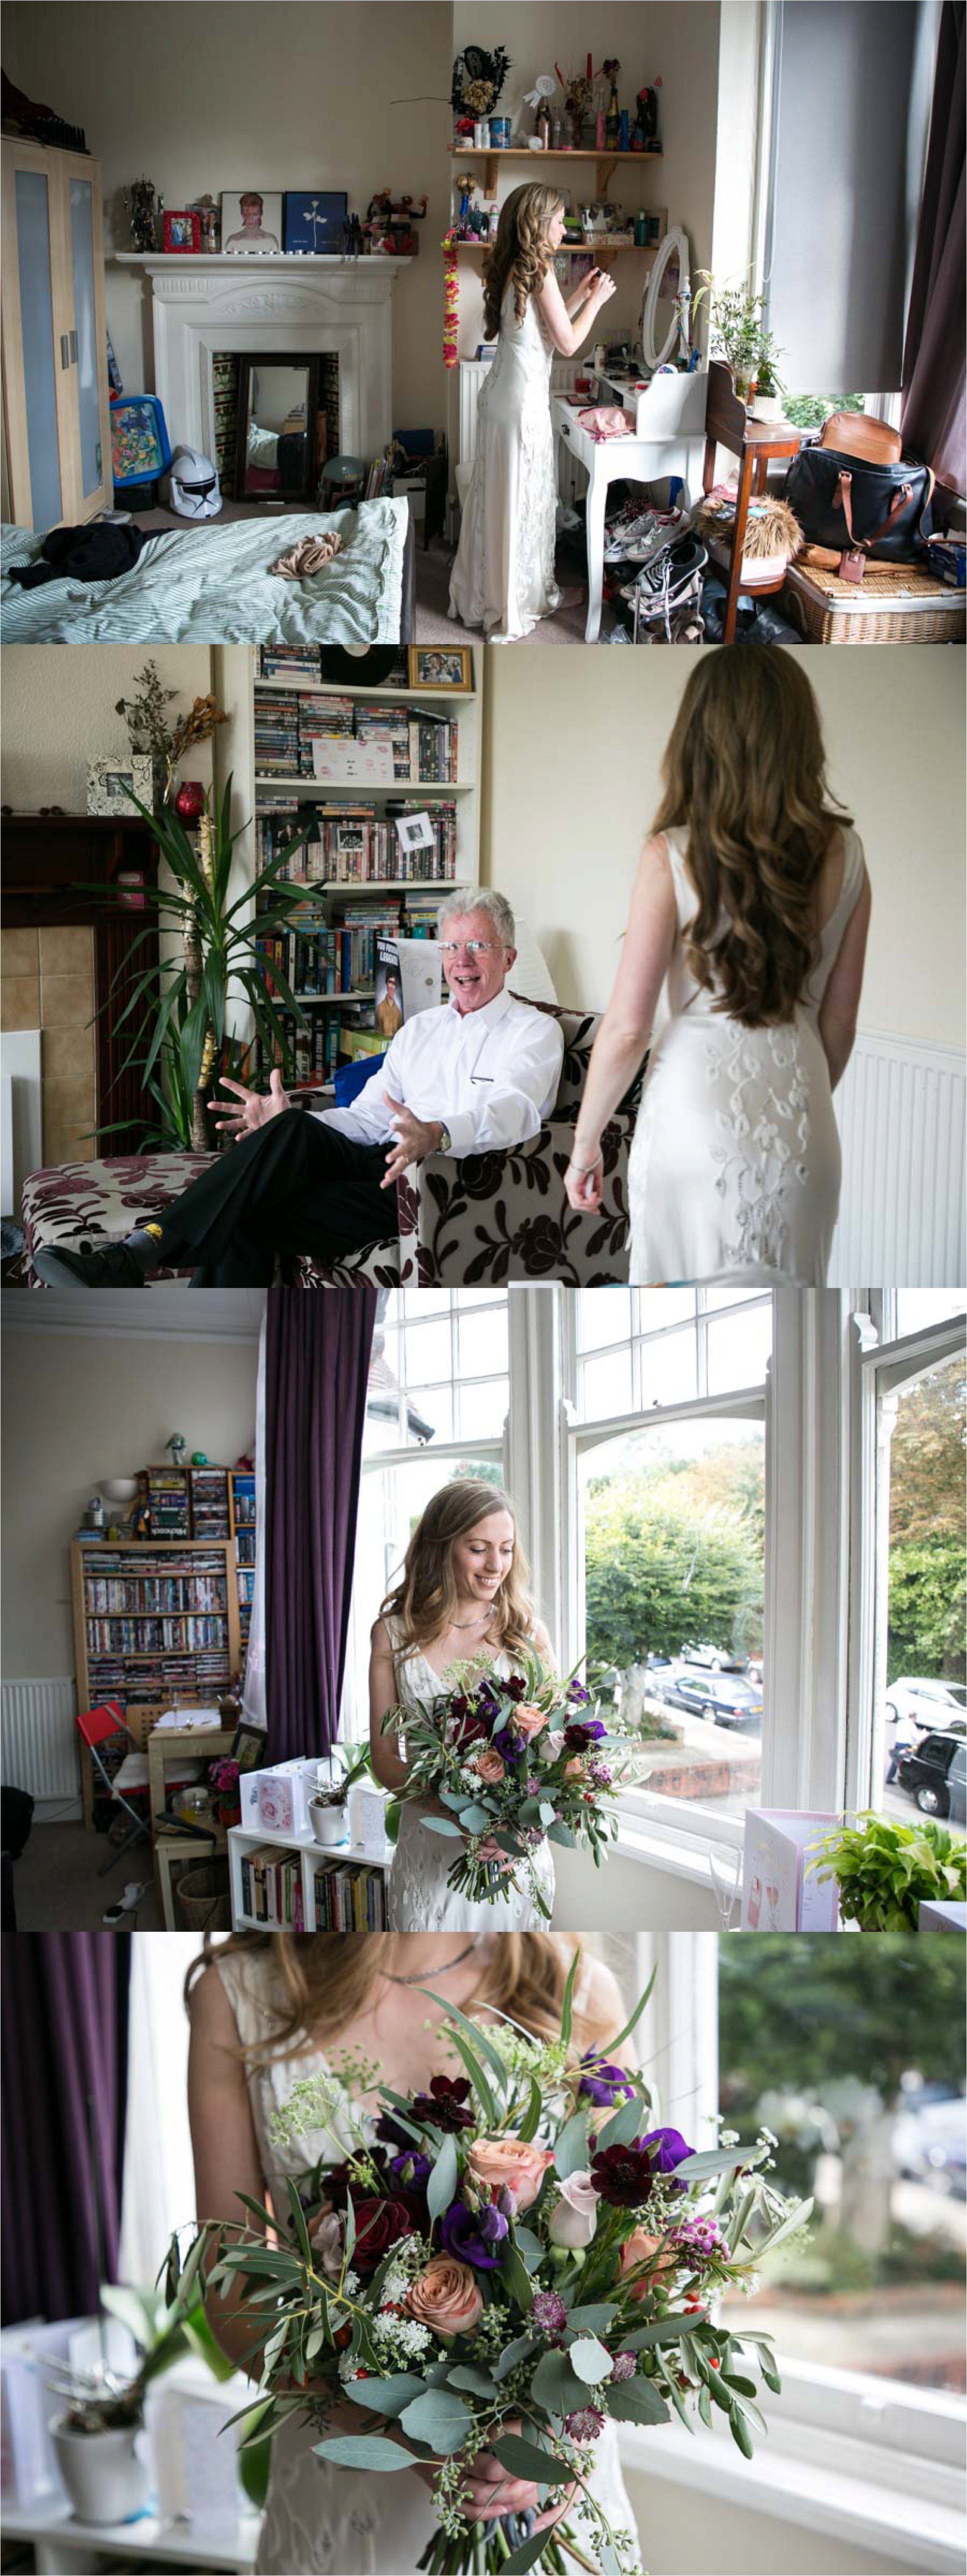 bride in jenny packham dress getting ready for wedding at home in london